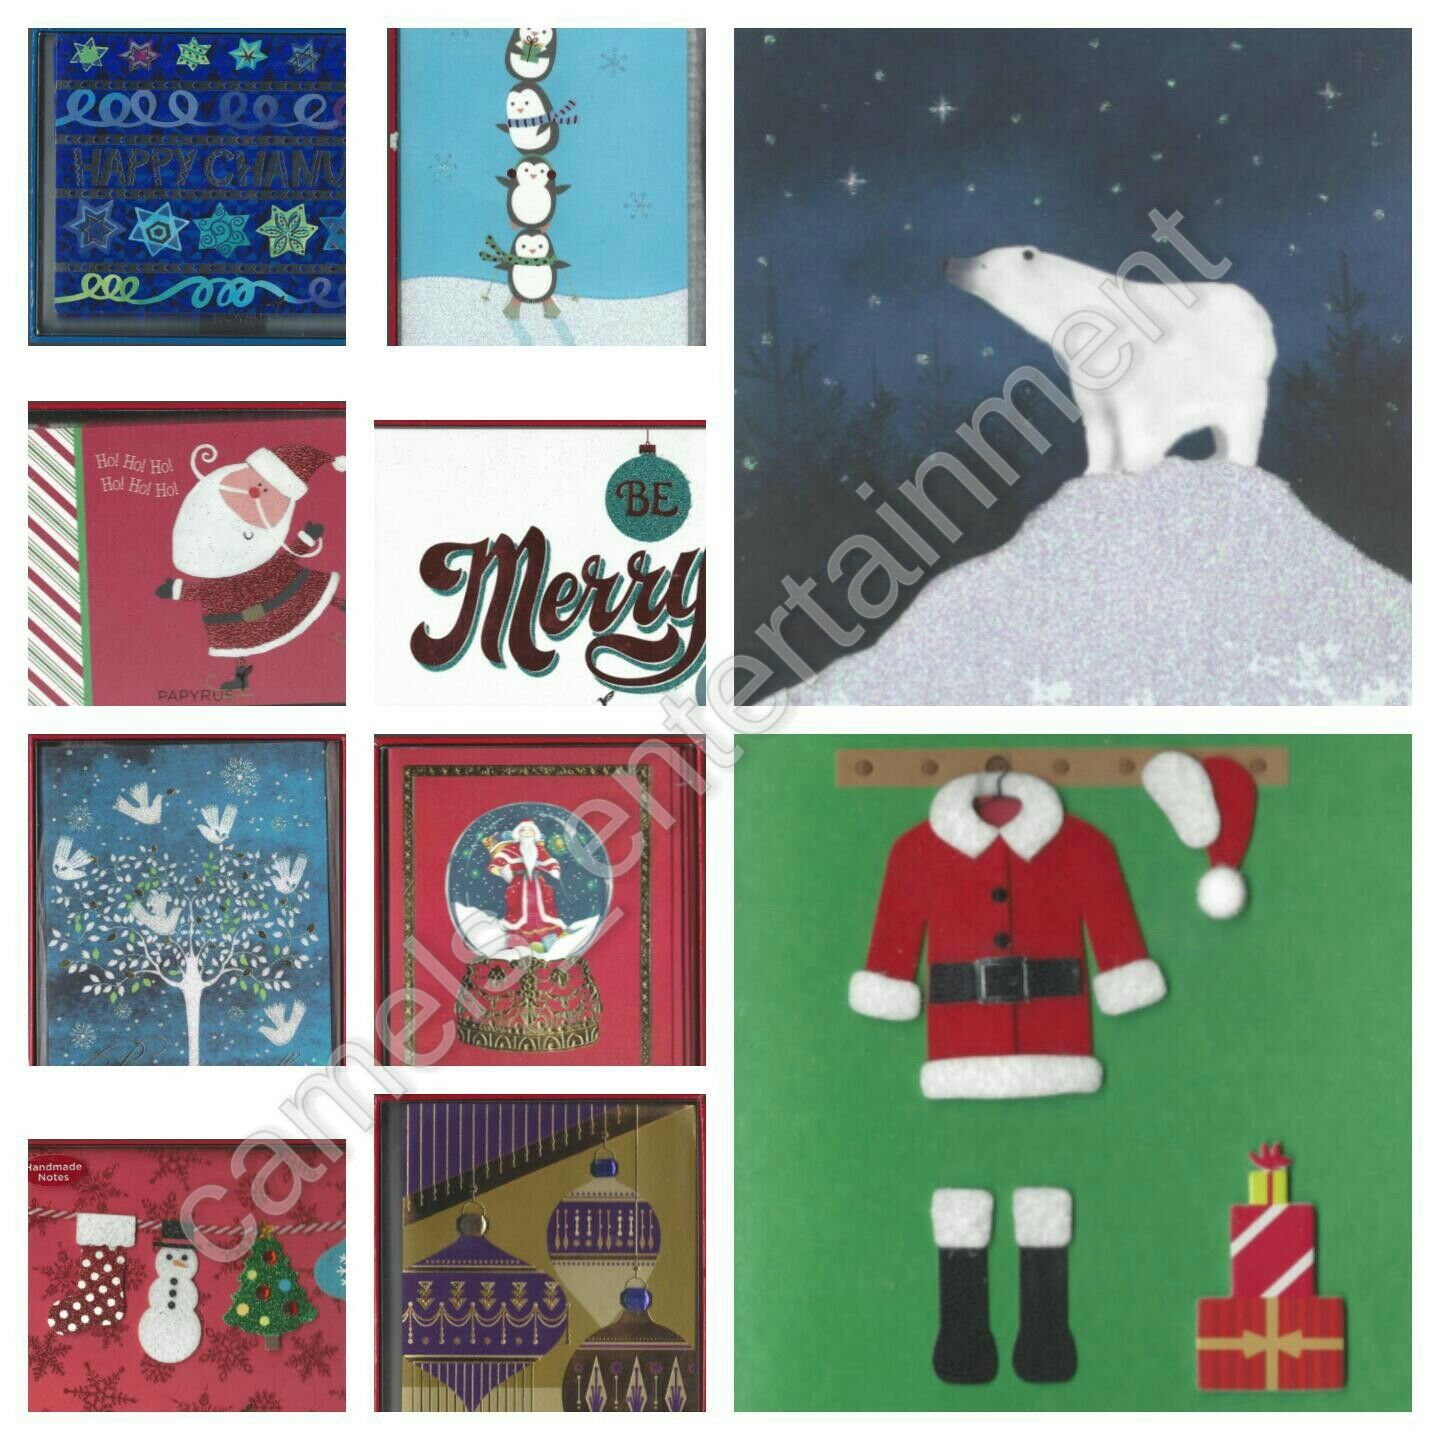 1 of 1free shipping - Papyrus Holiday Cards